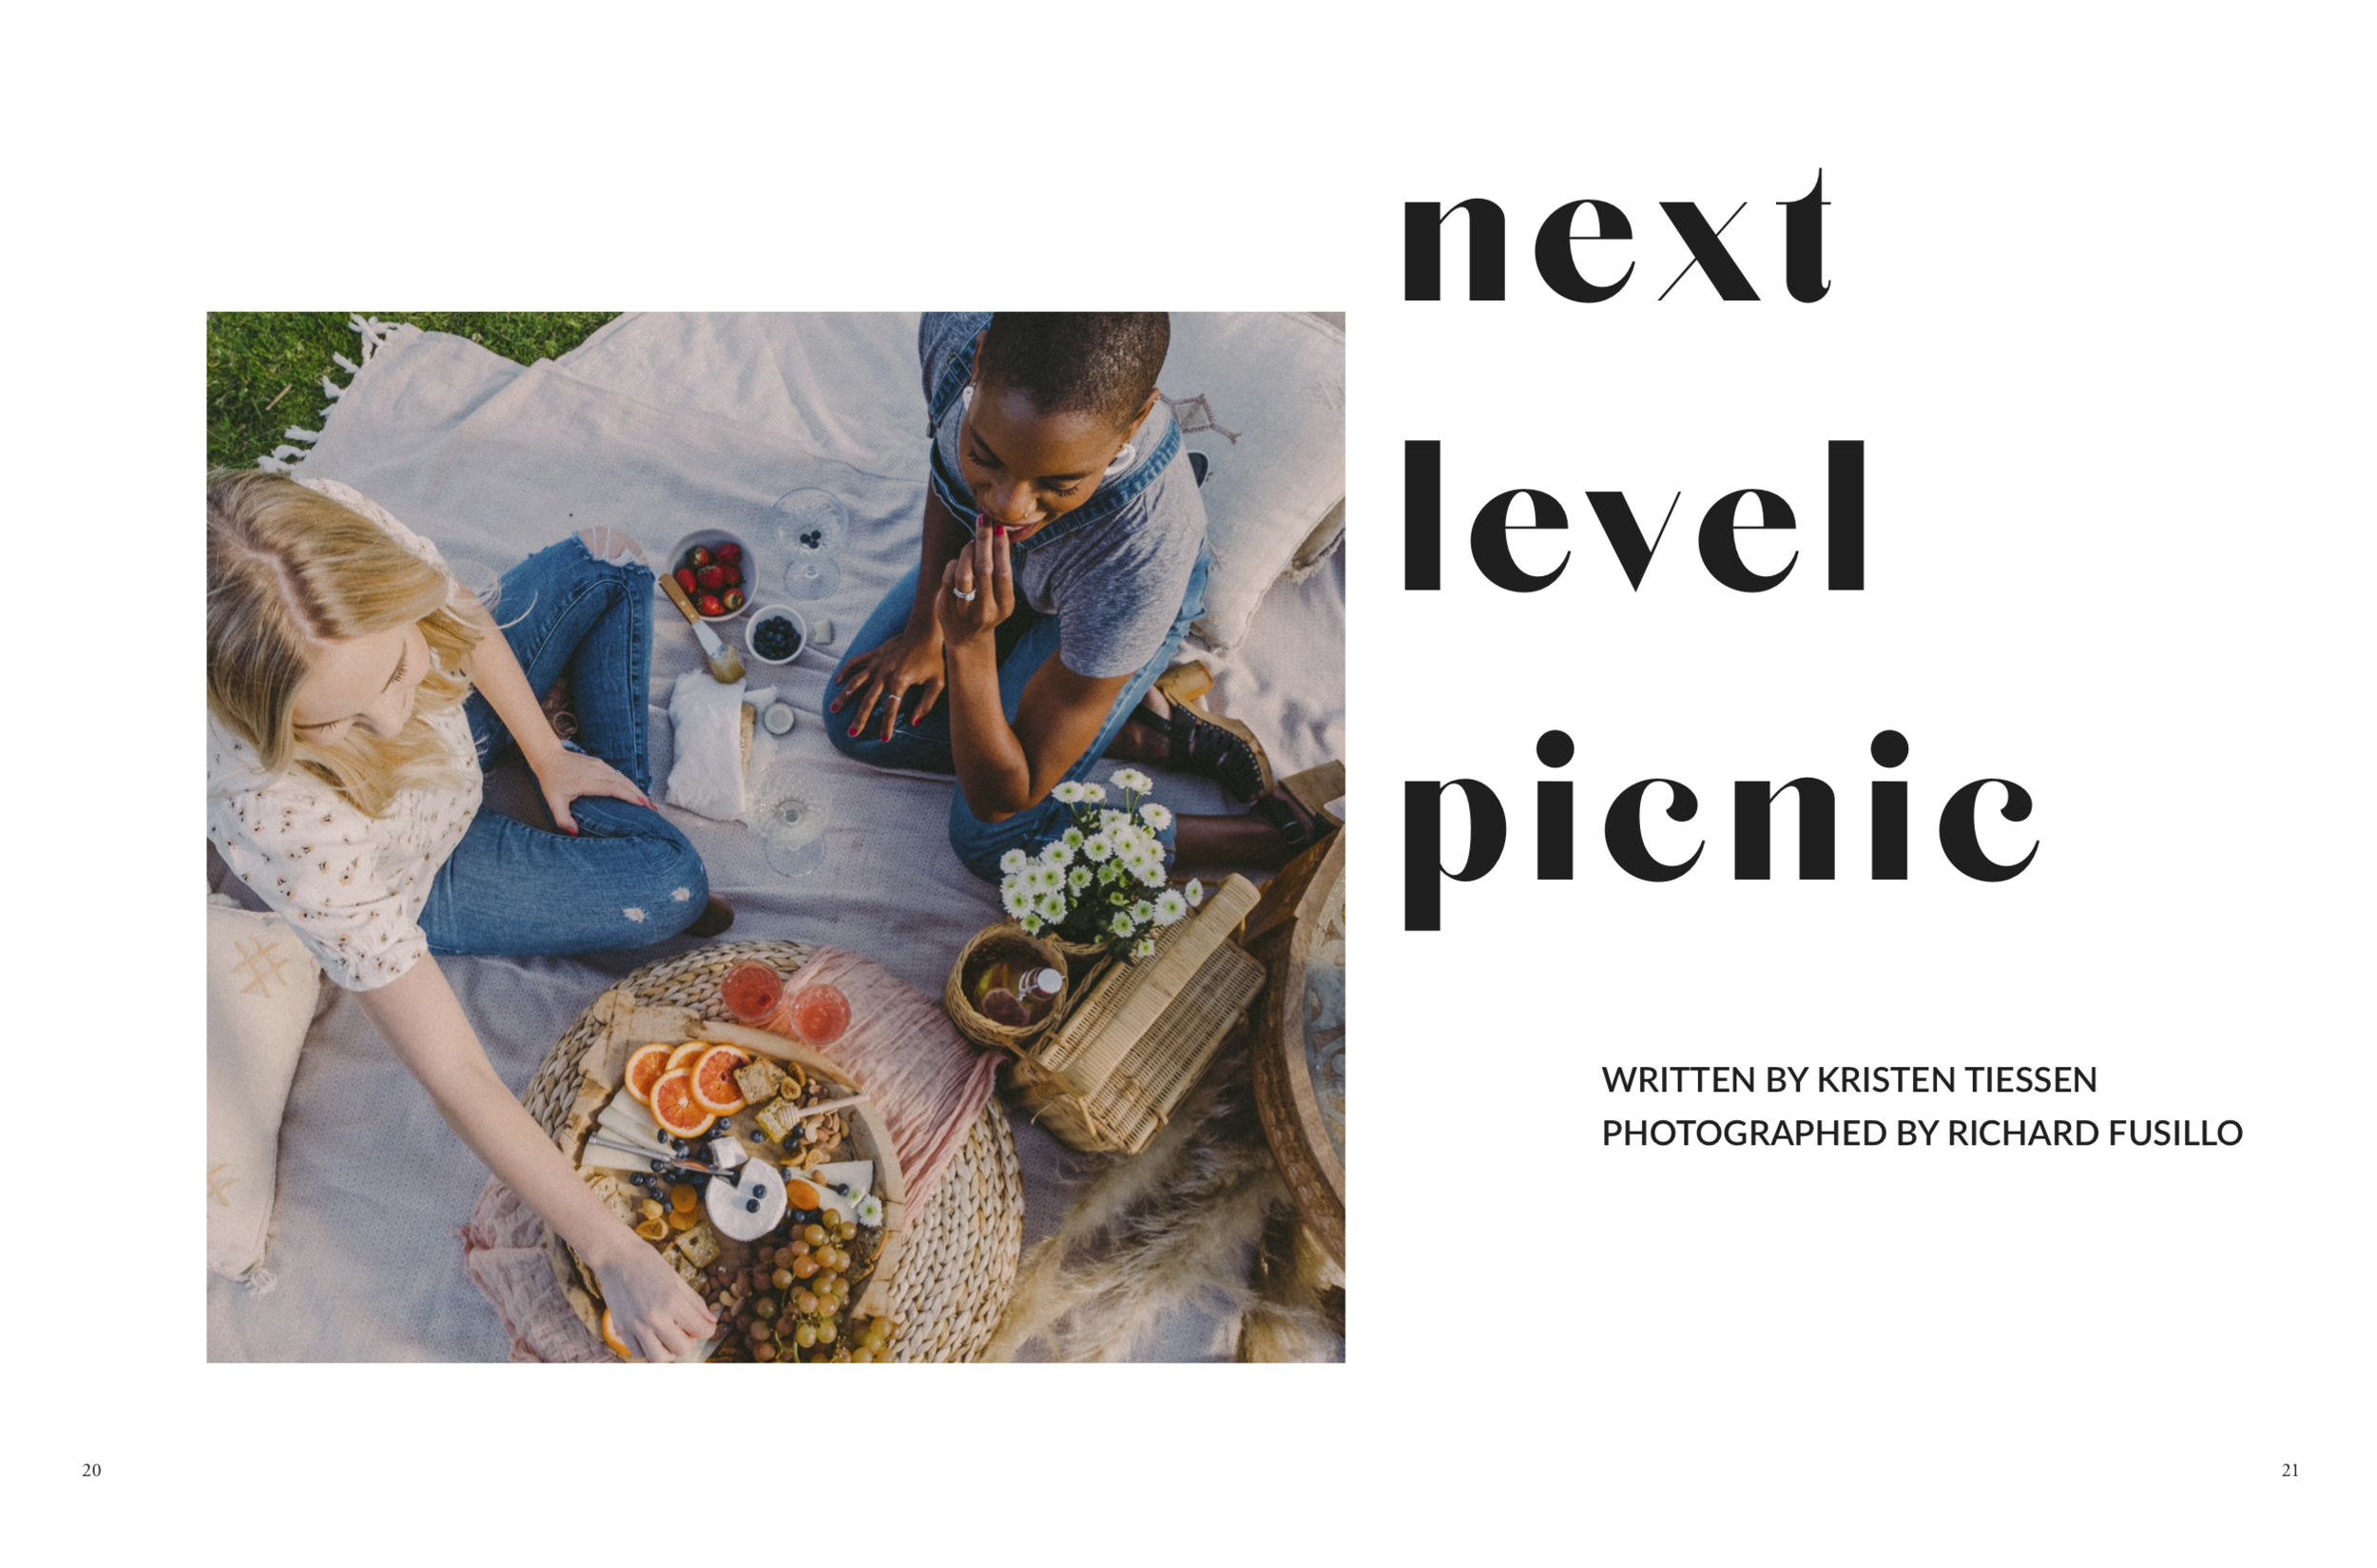 """Next Level Picnic"" - With Santa Barbara Picnic Co., Nicole Leza has turned her love of picnics and her interest in event planning and styling into a career. She launched the biz in August 2018, and today she offers private parties of 2 to 35 guests an experience unlike anything they ever thought a picnic could be. Birthdays, anniversaries, and engagement parties alike, Nicole has totally reimagined your standard field day."